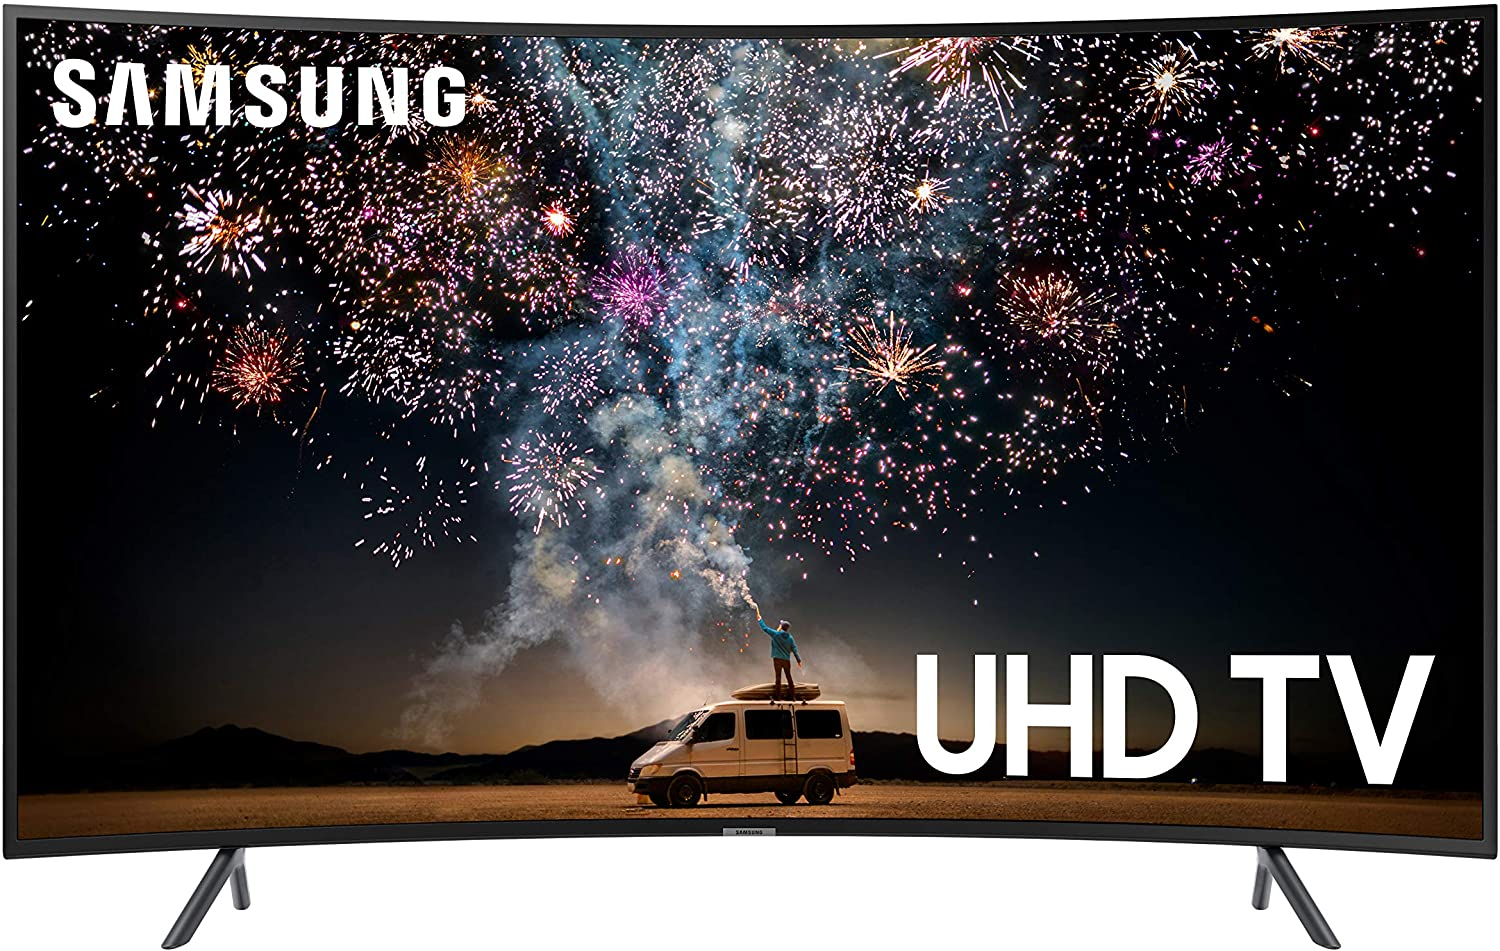 Classier: Buy SAMSUNG Samsung UN55RU7300FXZA Curved 55-Inch 4K UHD 7 Series Ultra HD Smart TV with HDR and Alexa Compatibility (2019 Model)